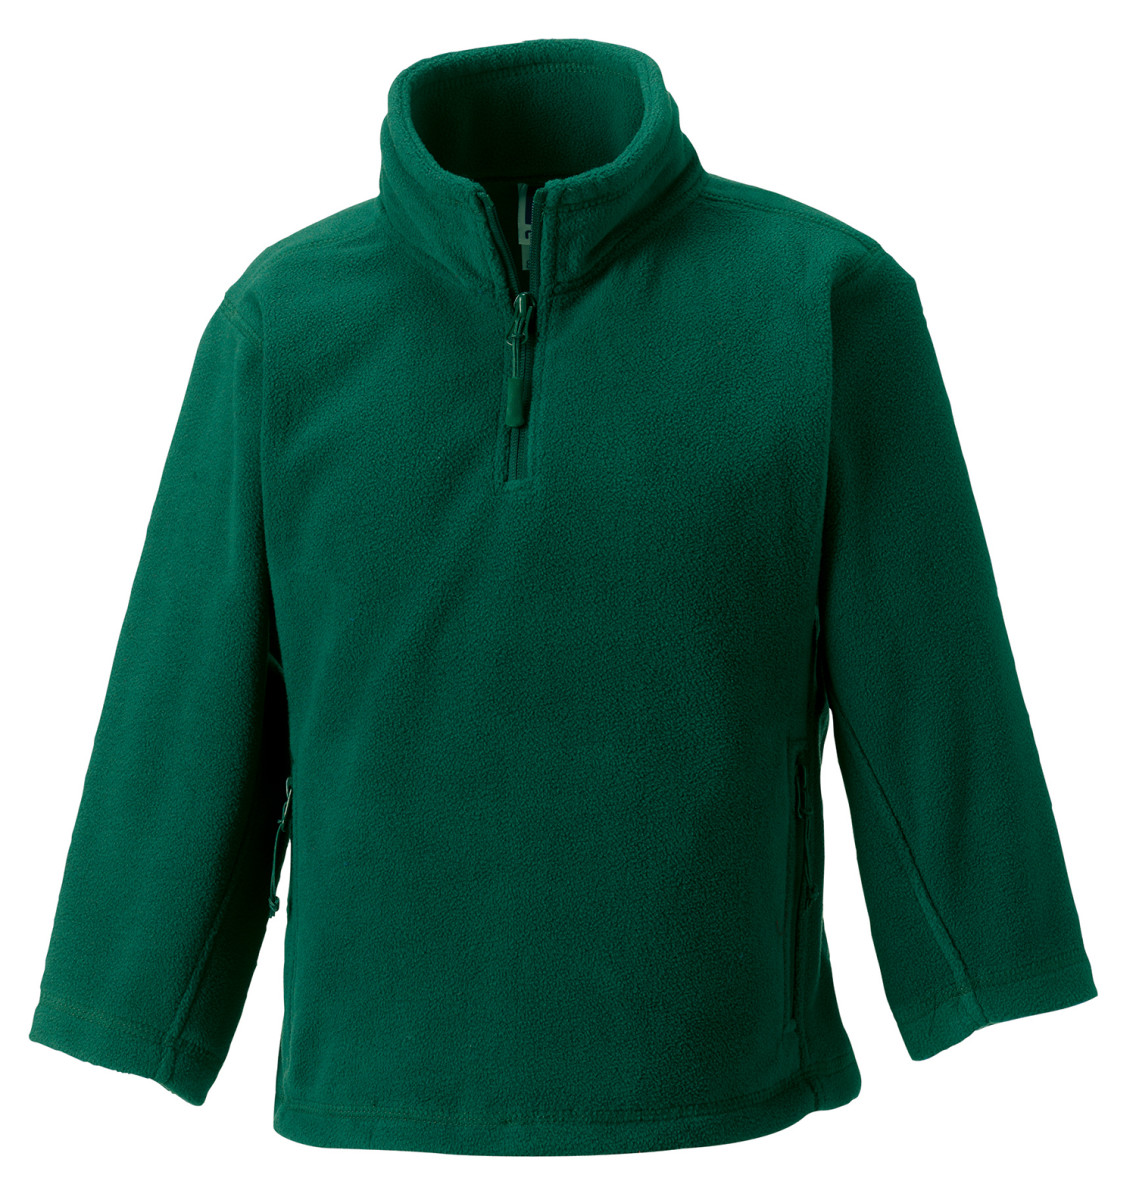 1/4 Zip Artic Fleece